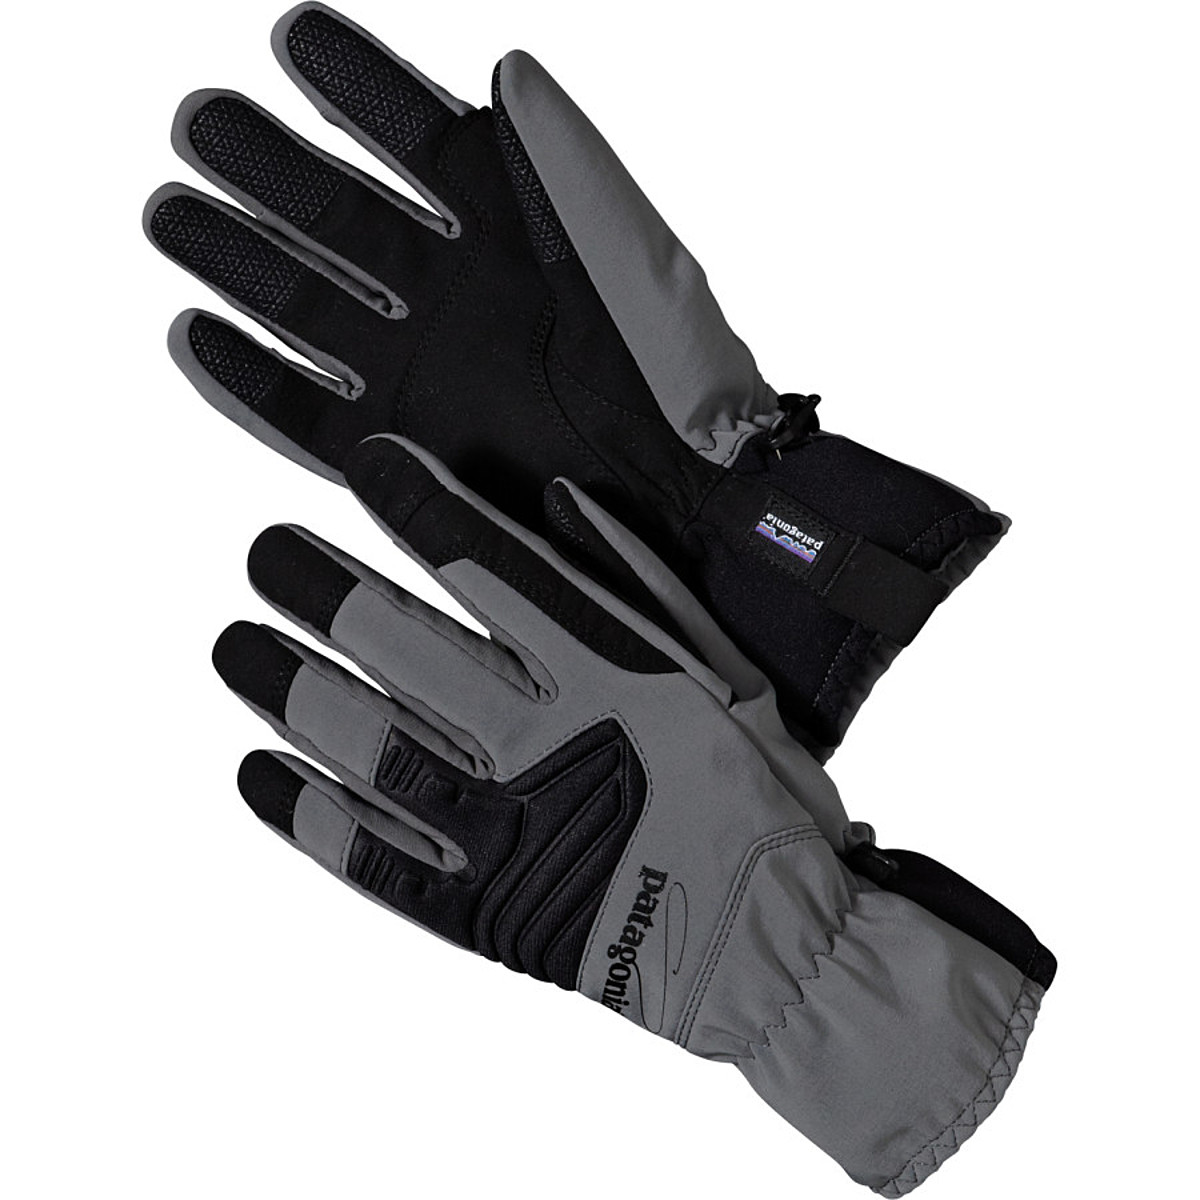 Patagonia Shelled Insulator Gloves